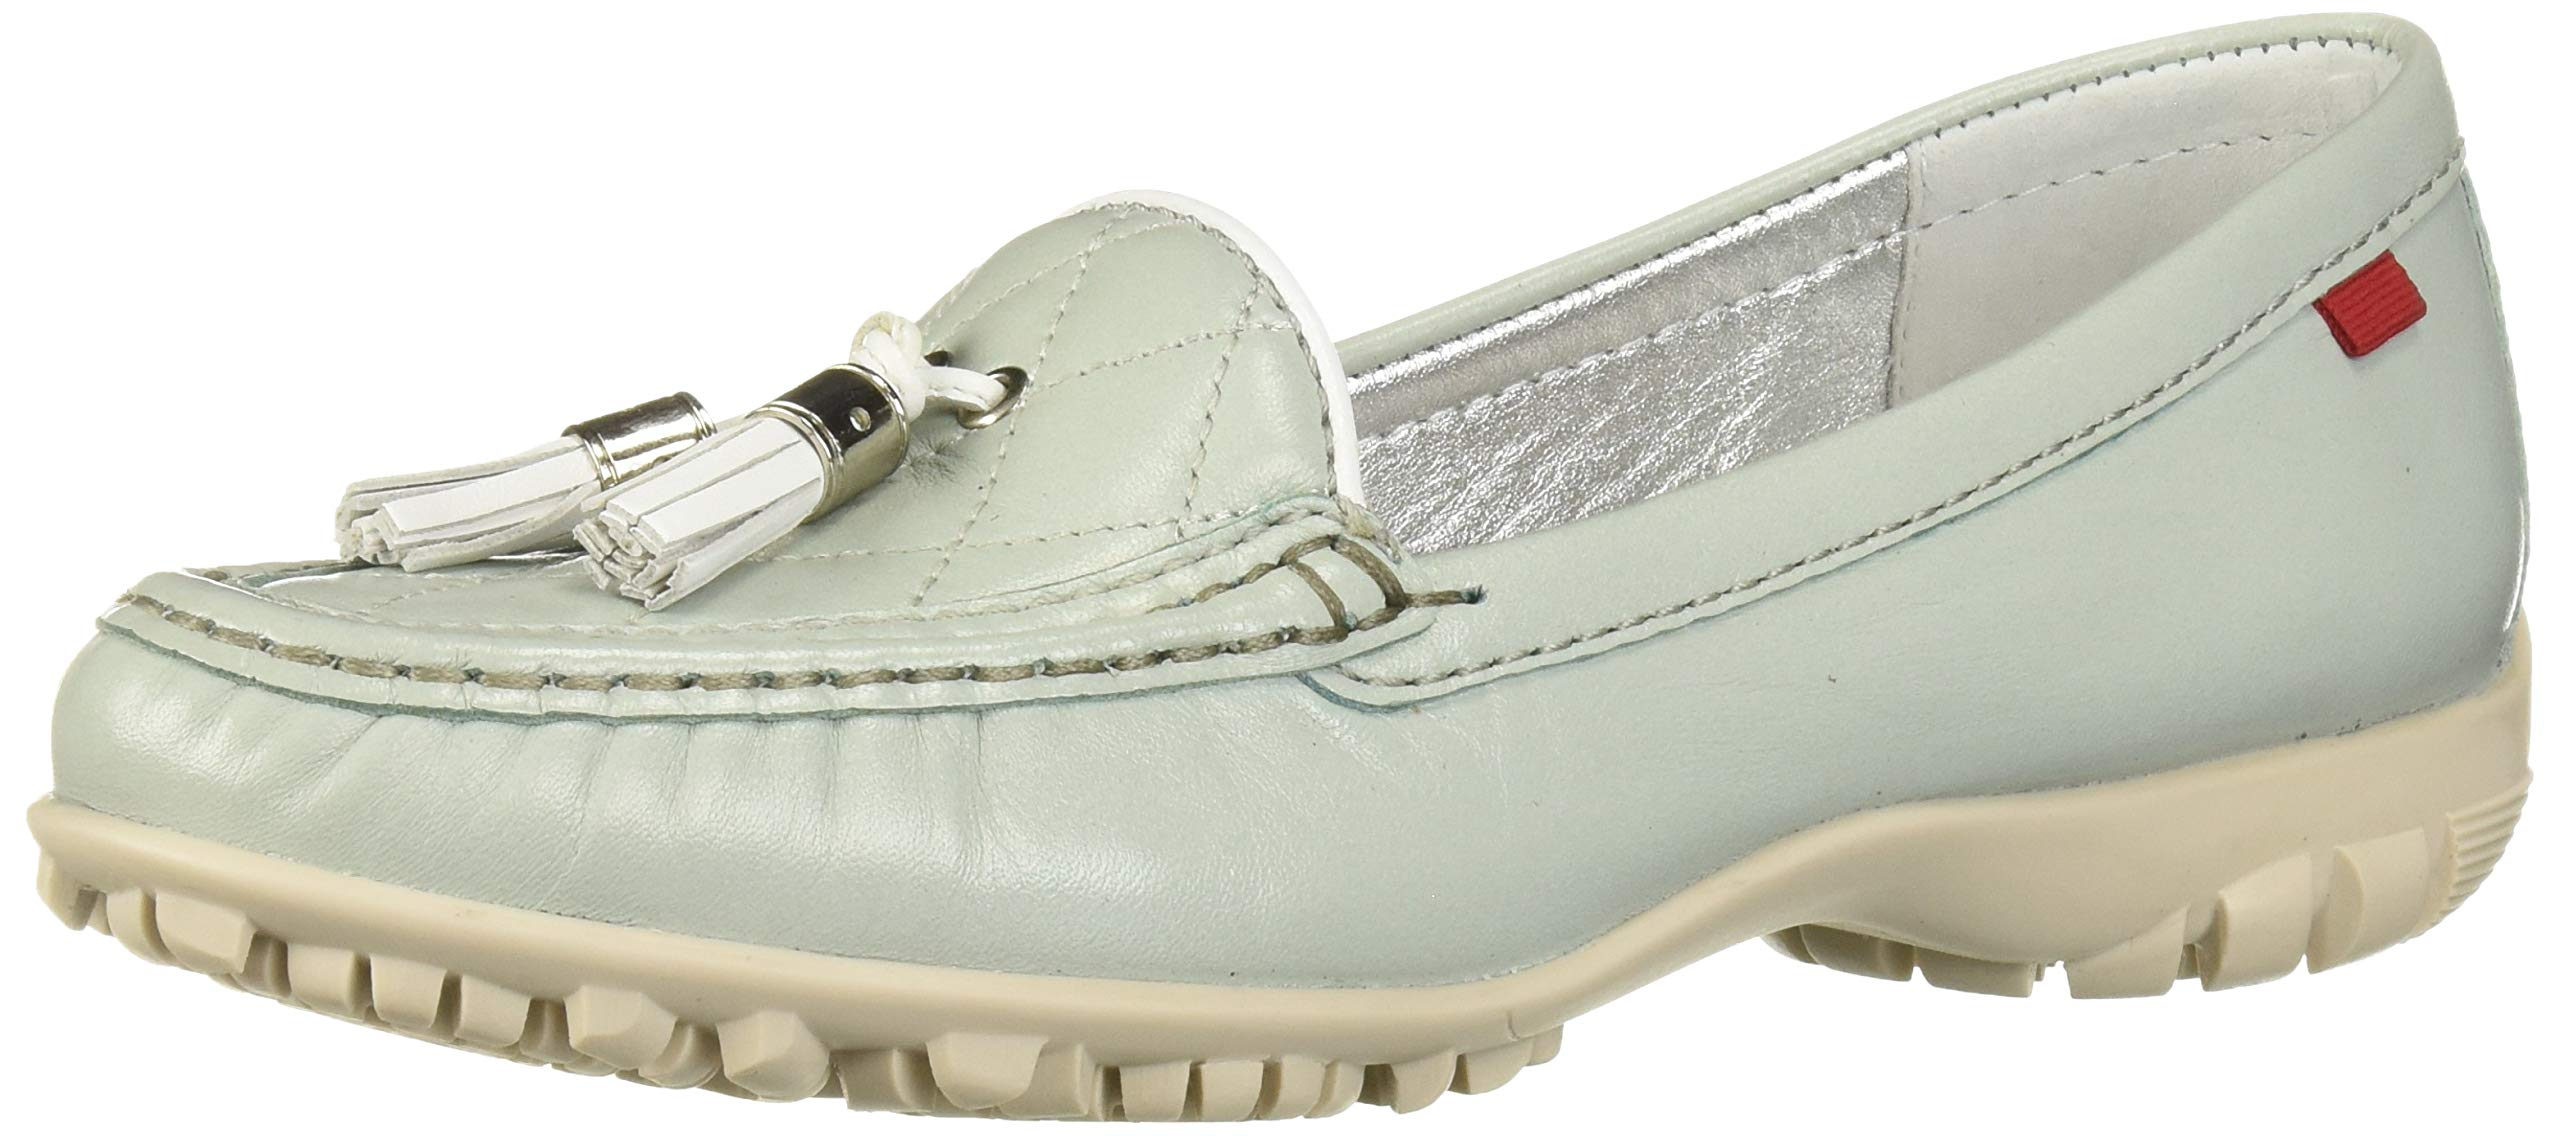 Marc Joseph New York Women's Womens Genuine Leather Made in Brazil Wall Street Golf Shoe Athletic Shoe, Mint nappa/White, 7.5 M US by MARC JOSEPH NEW YORK